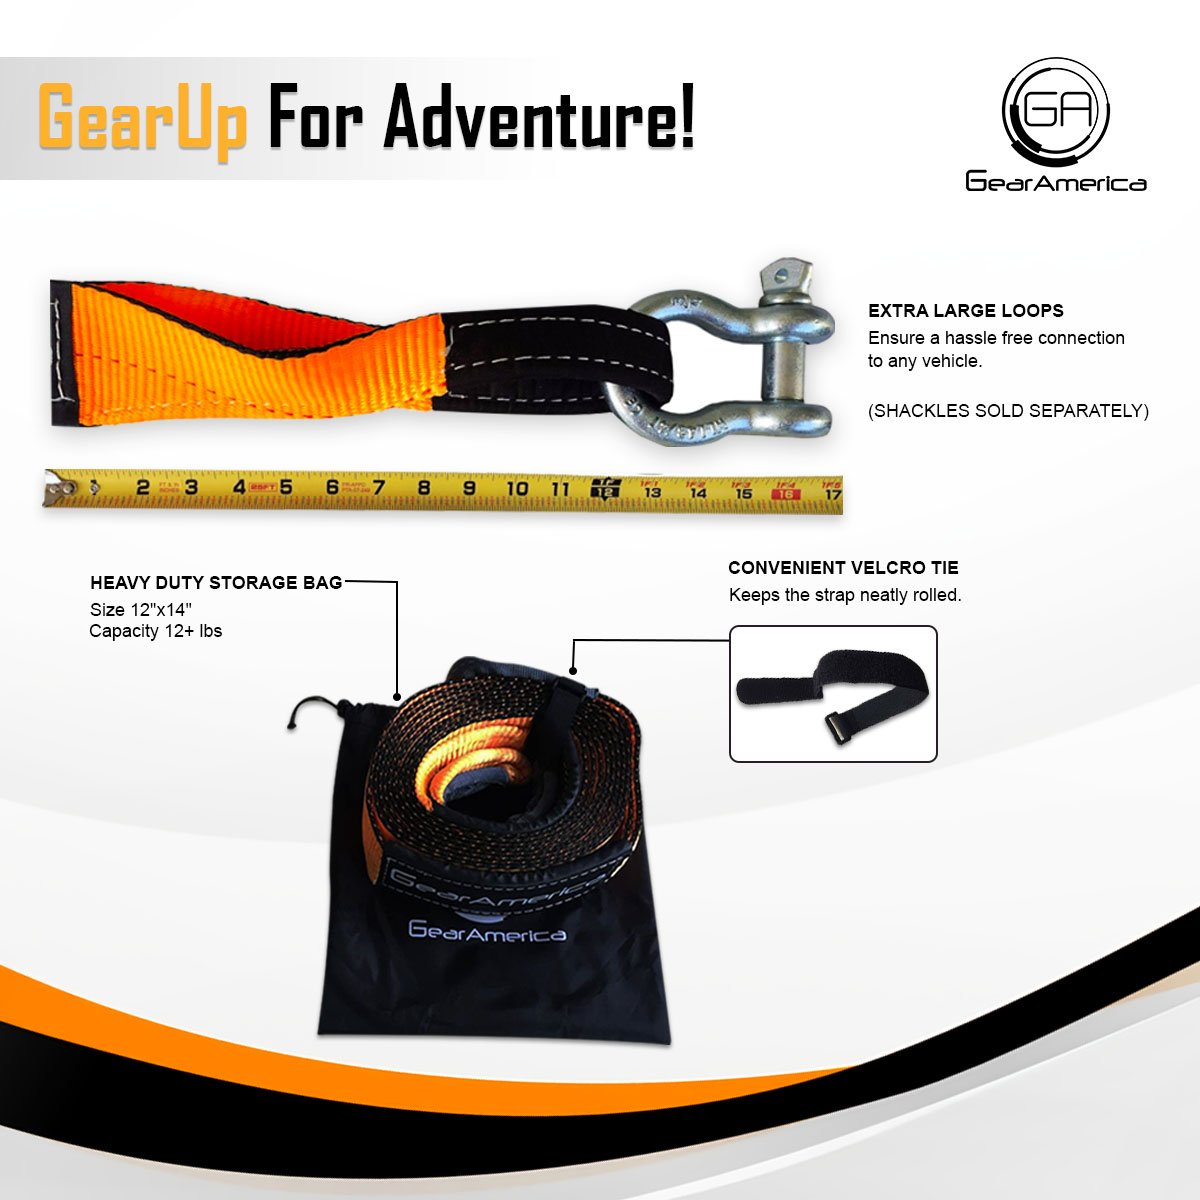 Heavy-Duty Tree Saver Winch Strap | Off-Road Towing and Recovery Rope for Truck, Jeep and SUV | Attach Hook or D-Ring Shackle to Pull Stuck Vehicle | Lab-Tested 35,000 lbs | BONUS Storage Bag by GearAmerica (Image #7)